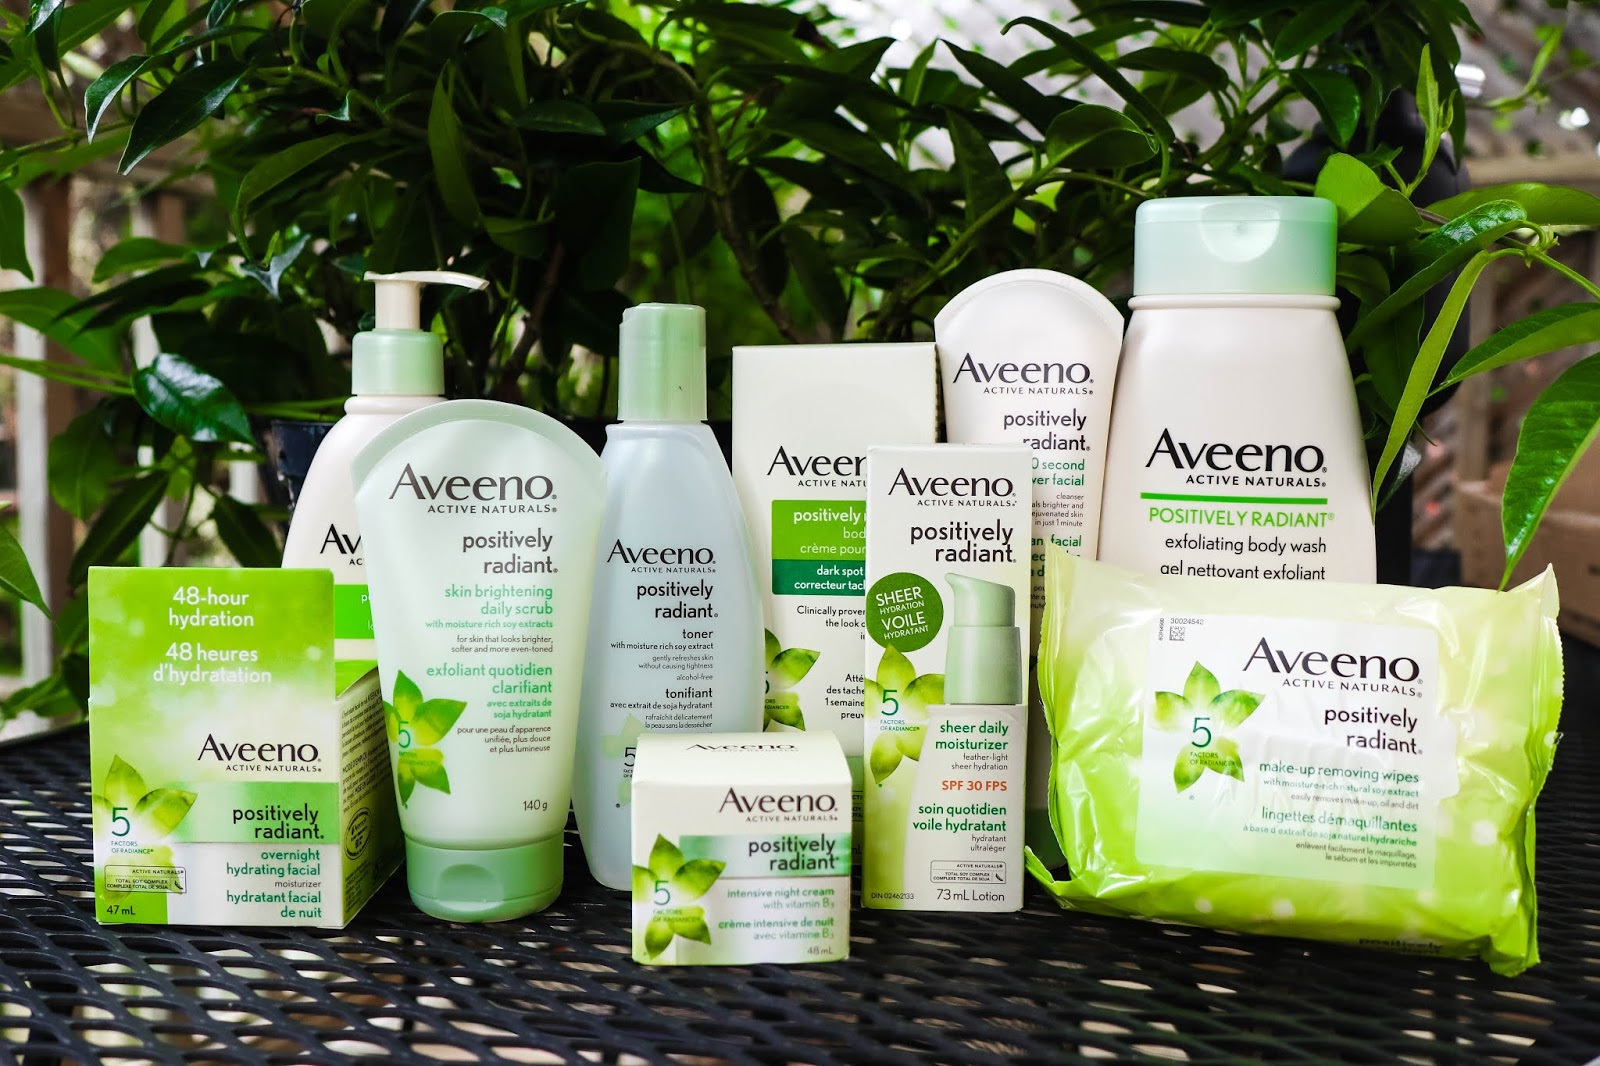 Aveeno Positively Radiant Skincare Drugstore Line Review